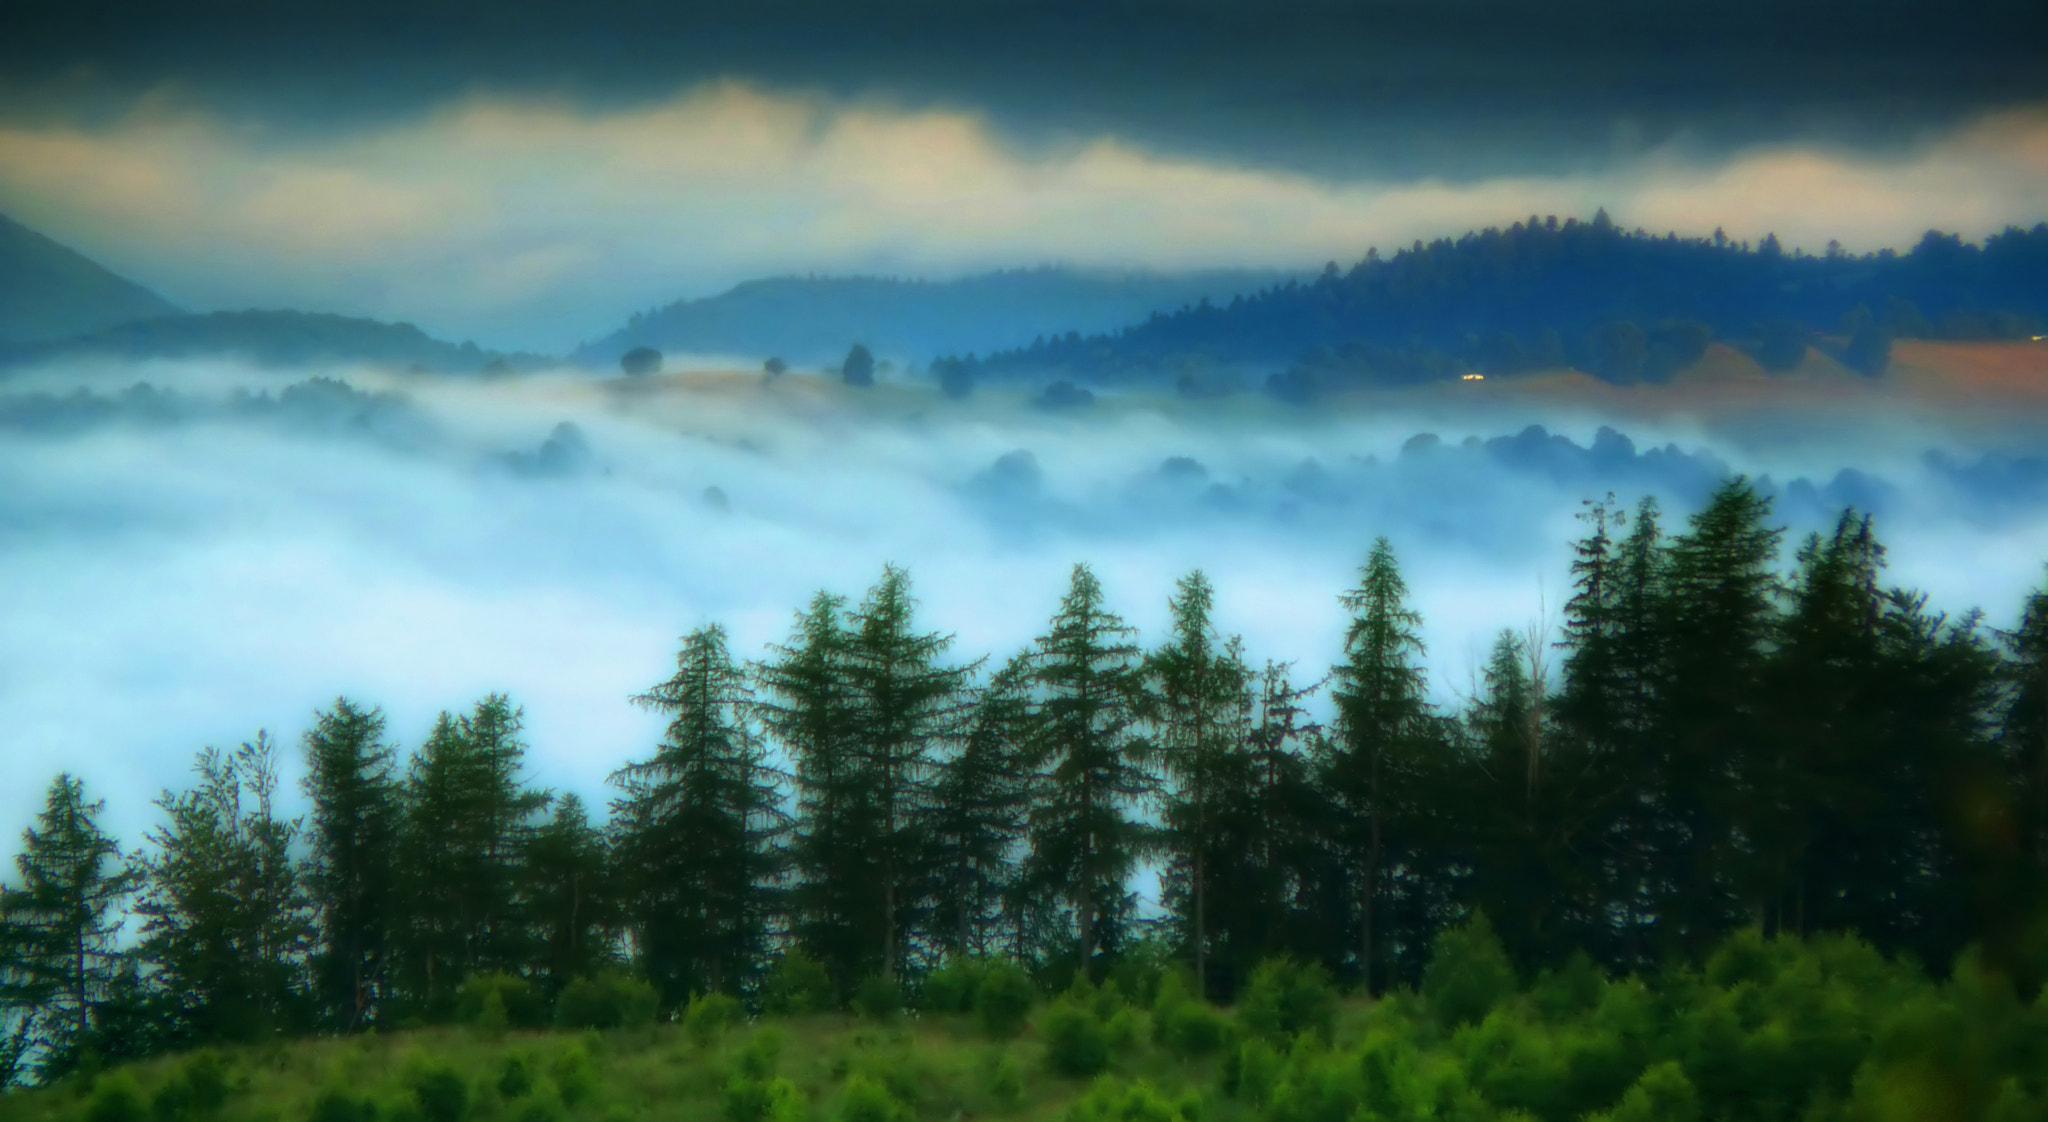 Photograph Misty morning by Roman Vanur on 500px